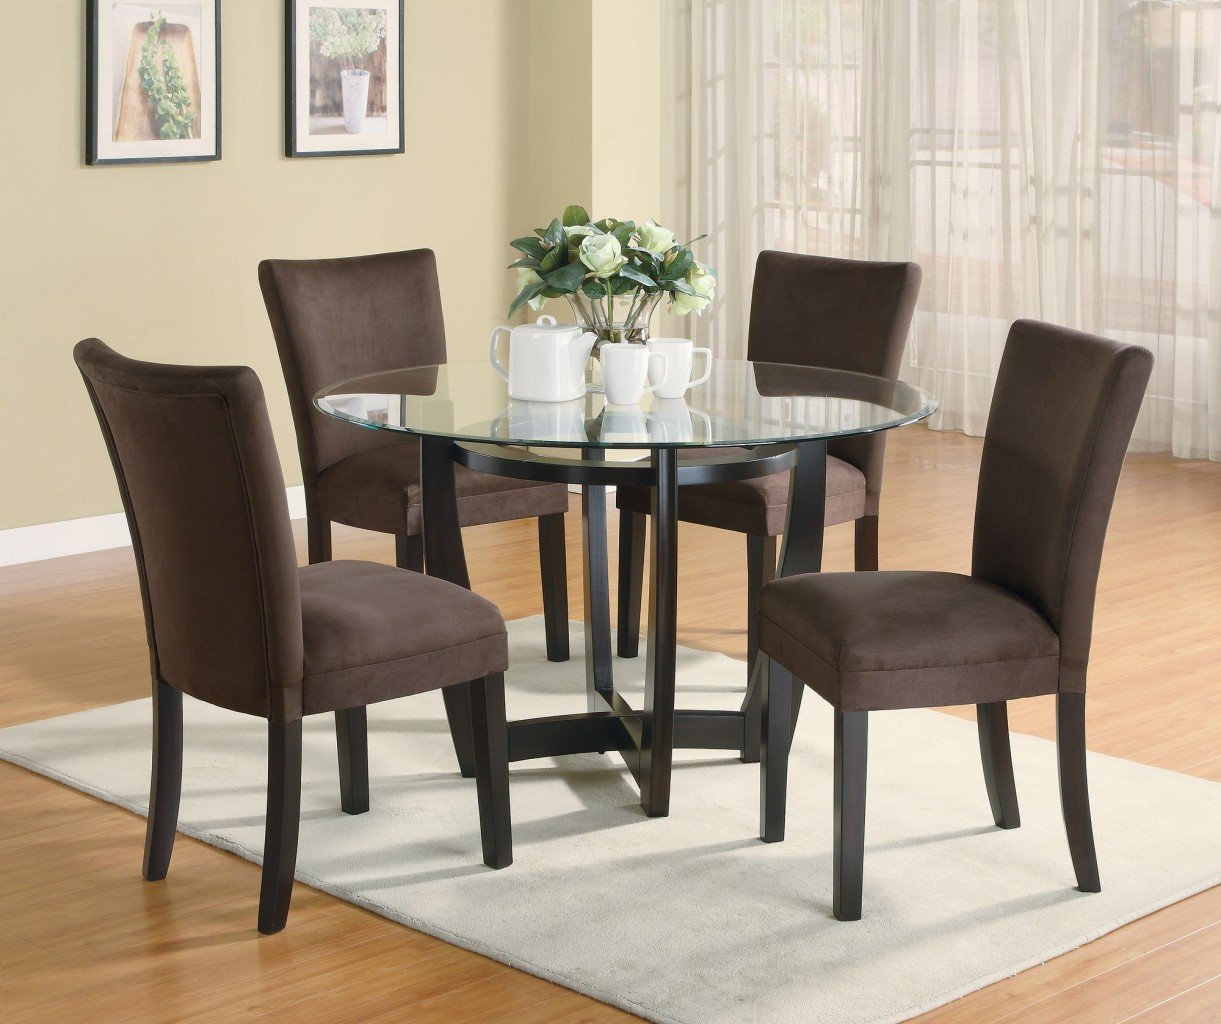 Dining Room Inexpensive Dining Room Table With Bench And